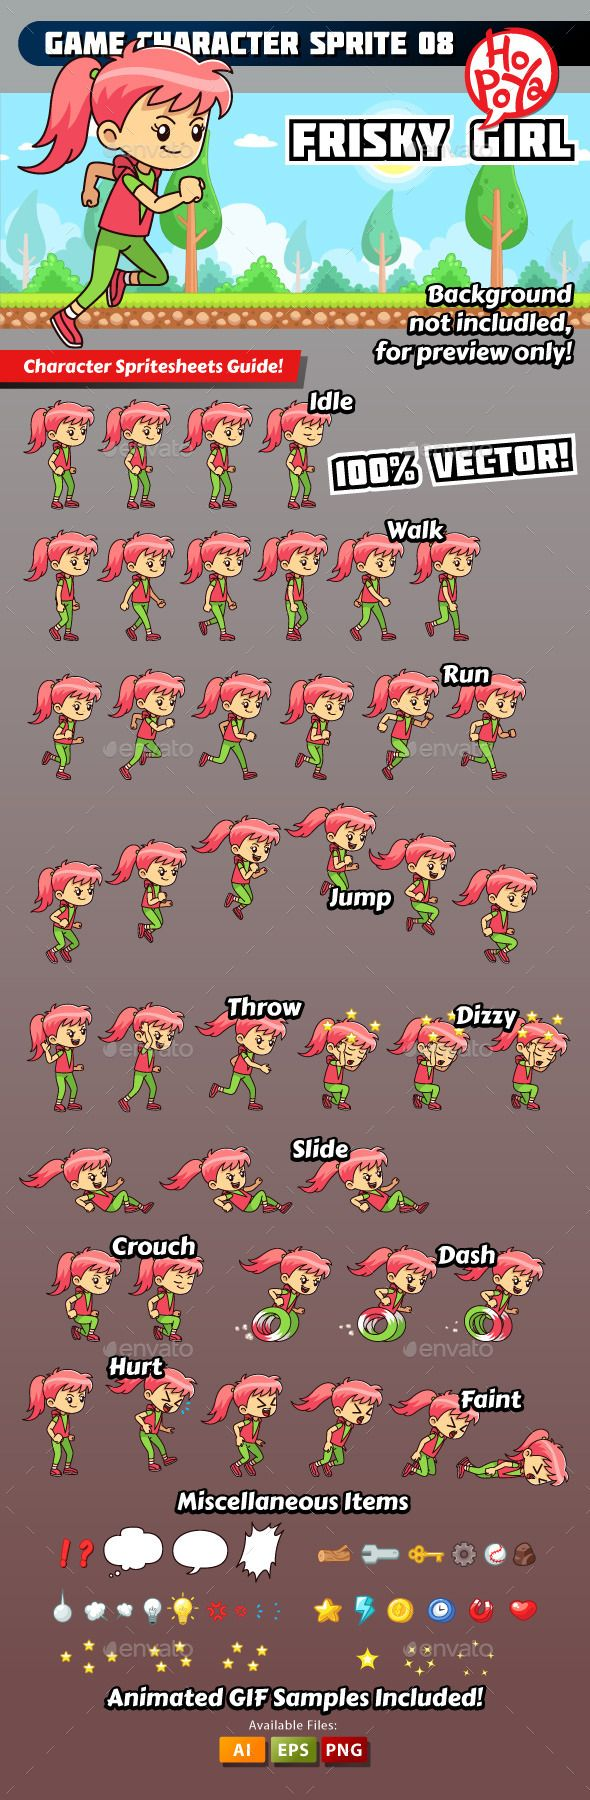 Game Character Sprite 08 - Download: http://graphicriver.net/item/game-character-sprite-08/9859593?ref=sinzo #Sprites #Game #Assets